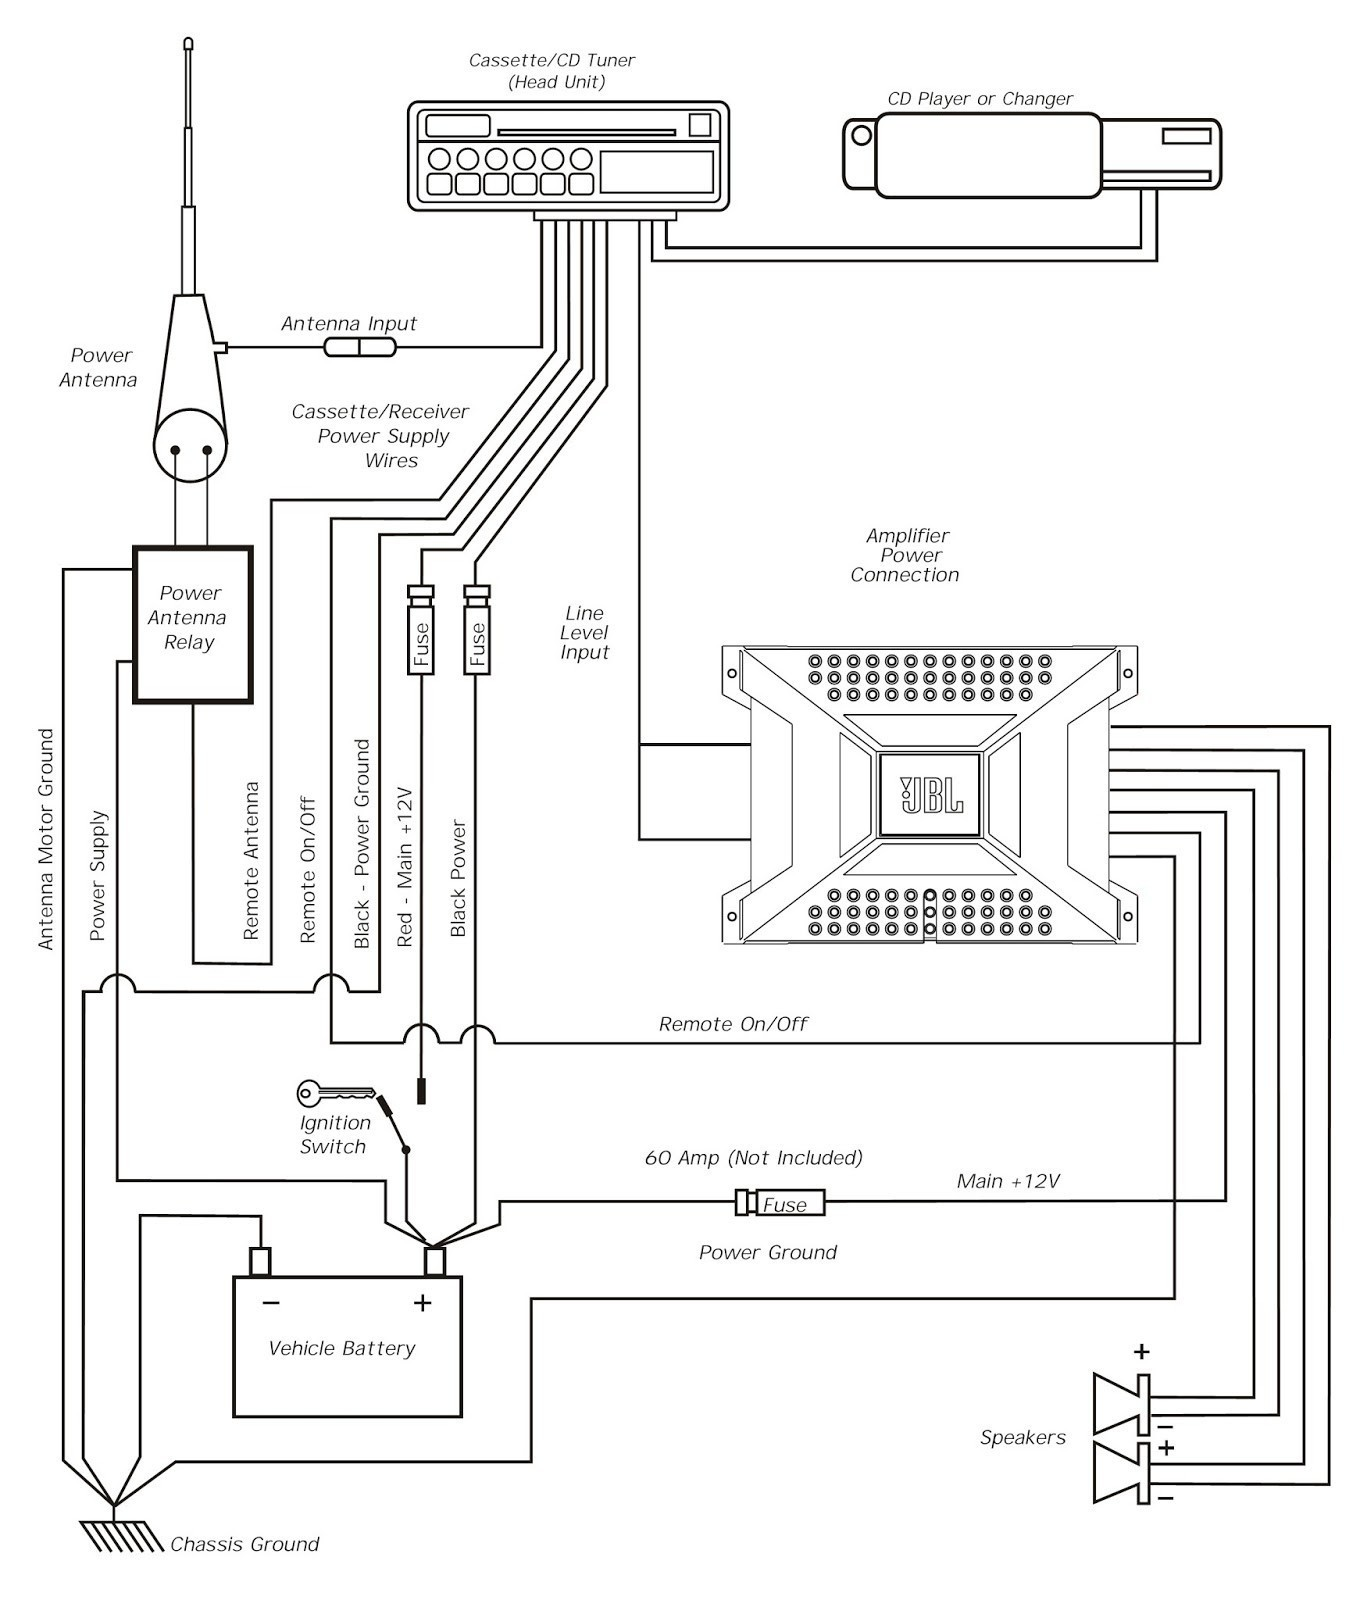 2000 Vw Jetta Radio Wiring Diagram 2003 Jetta Wiring Harness ...  Jetta Radio Wire Diagram on